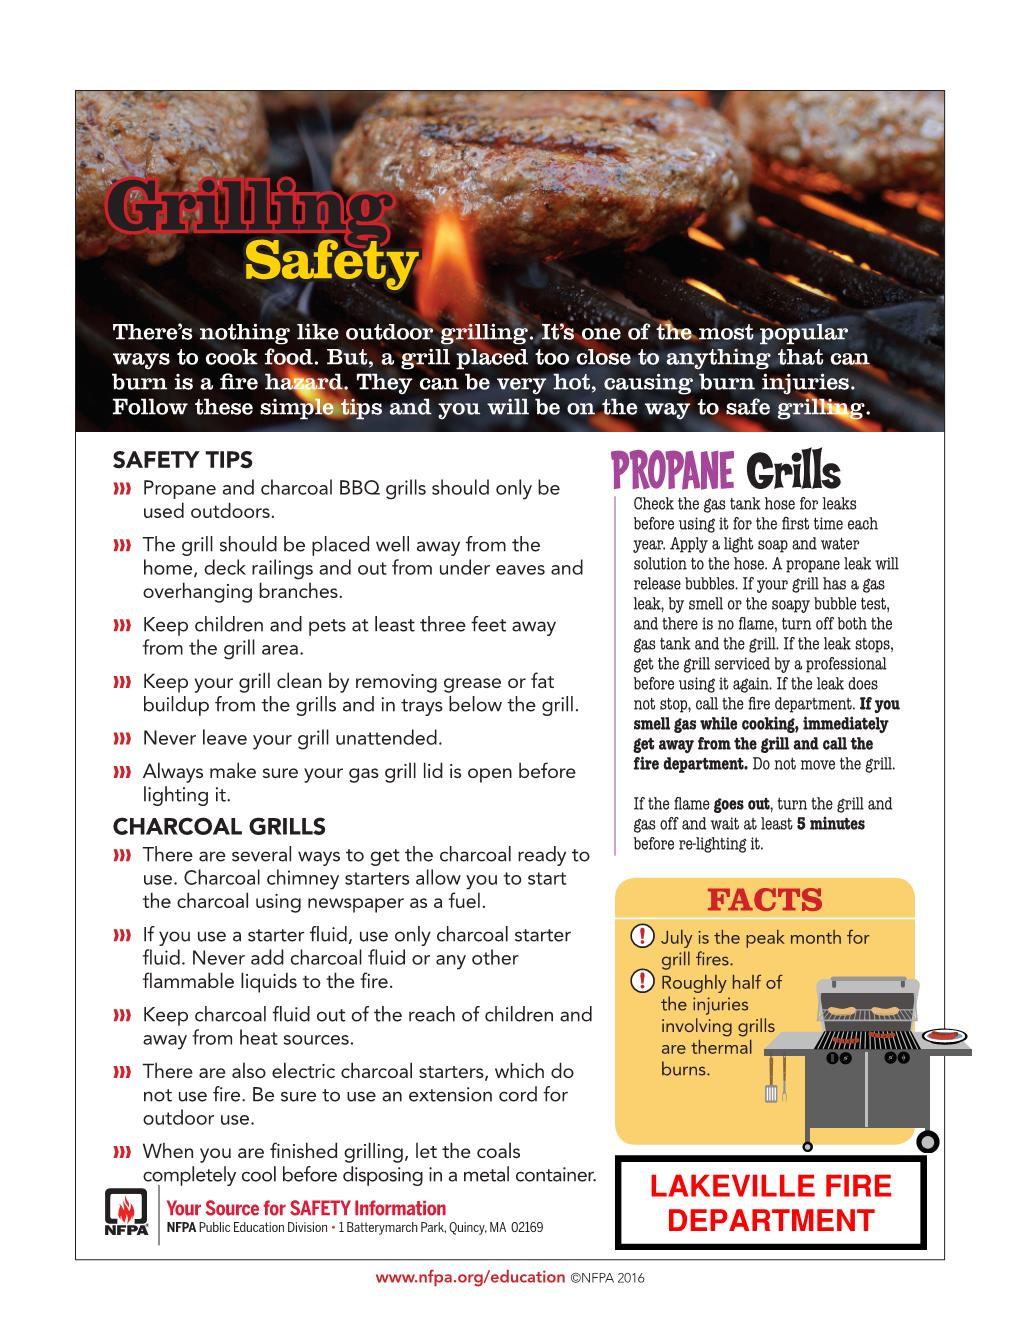 NFPA Grilling_safety_Tips LFD